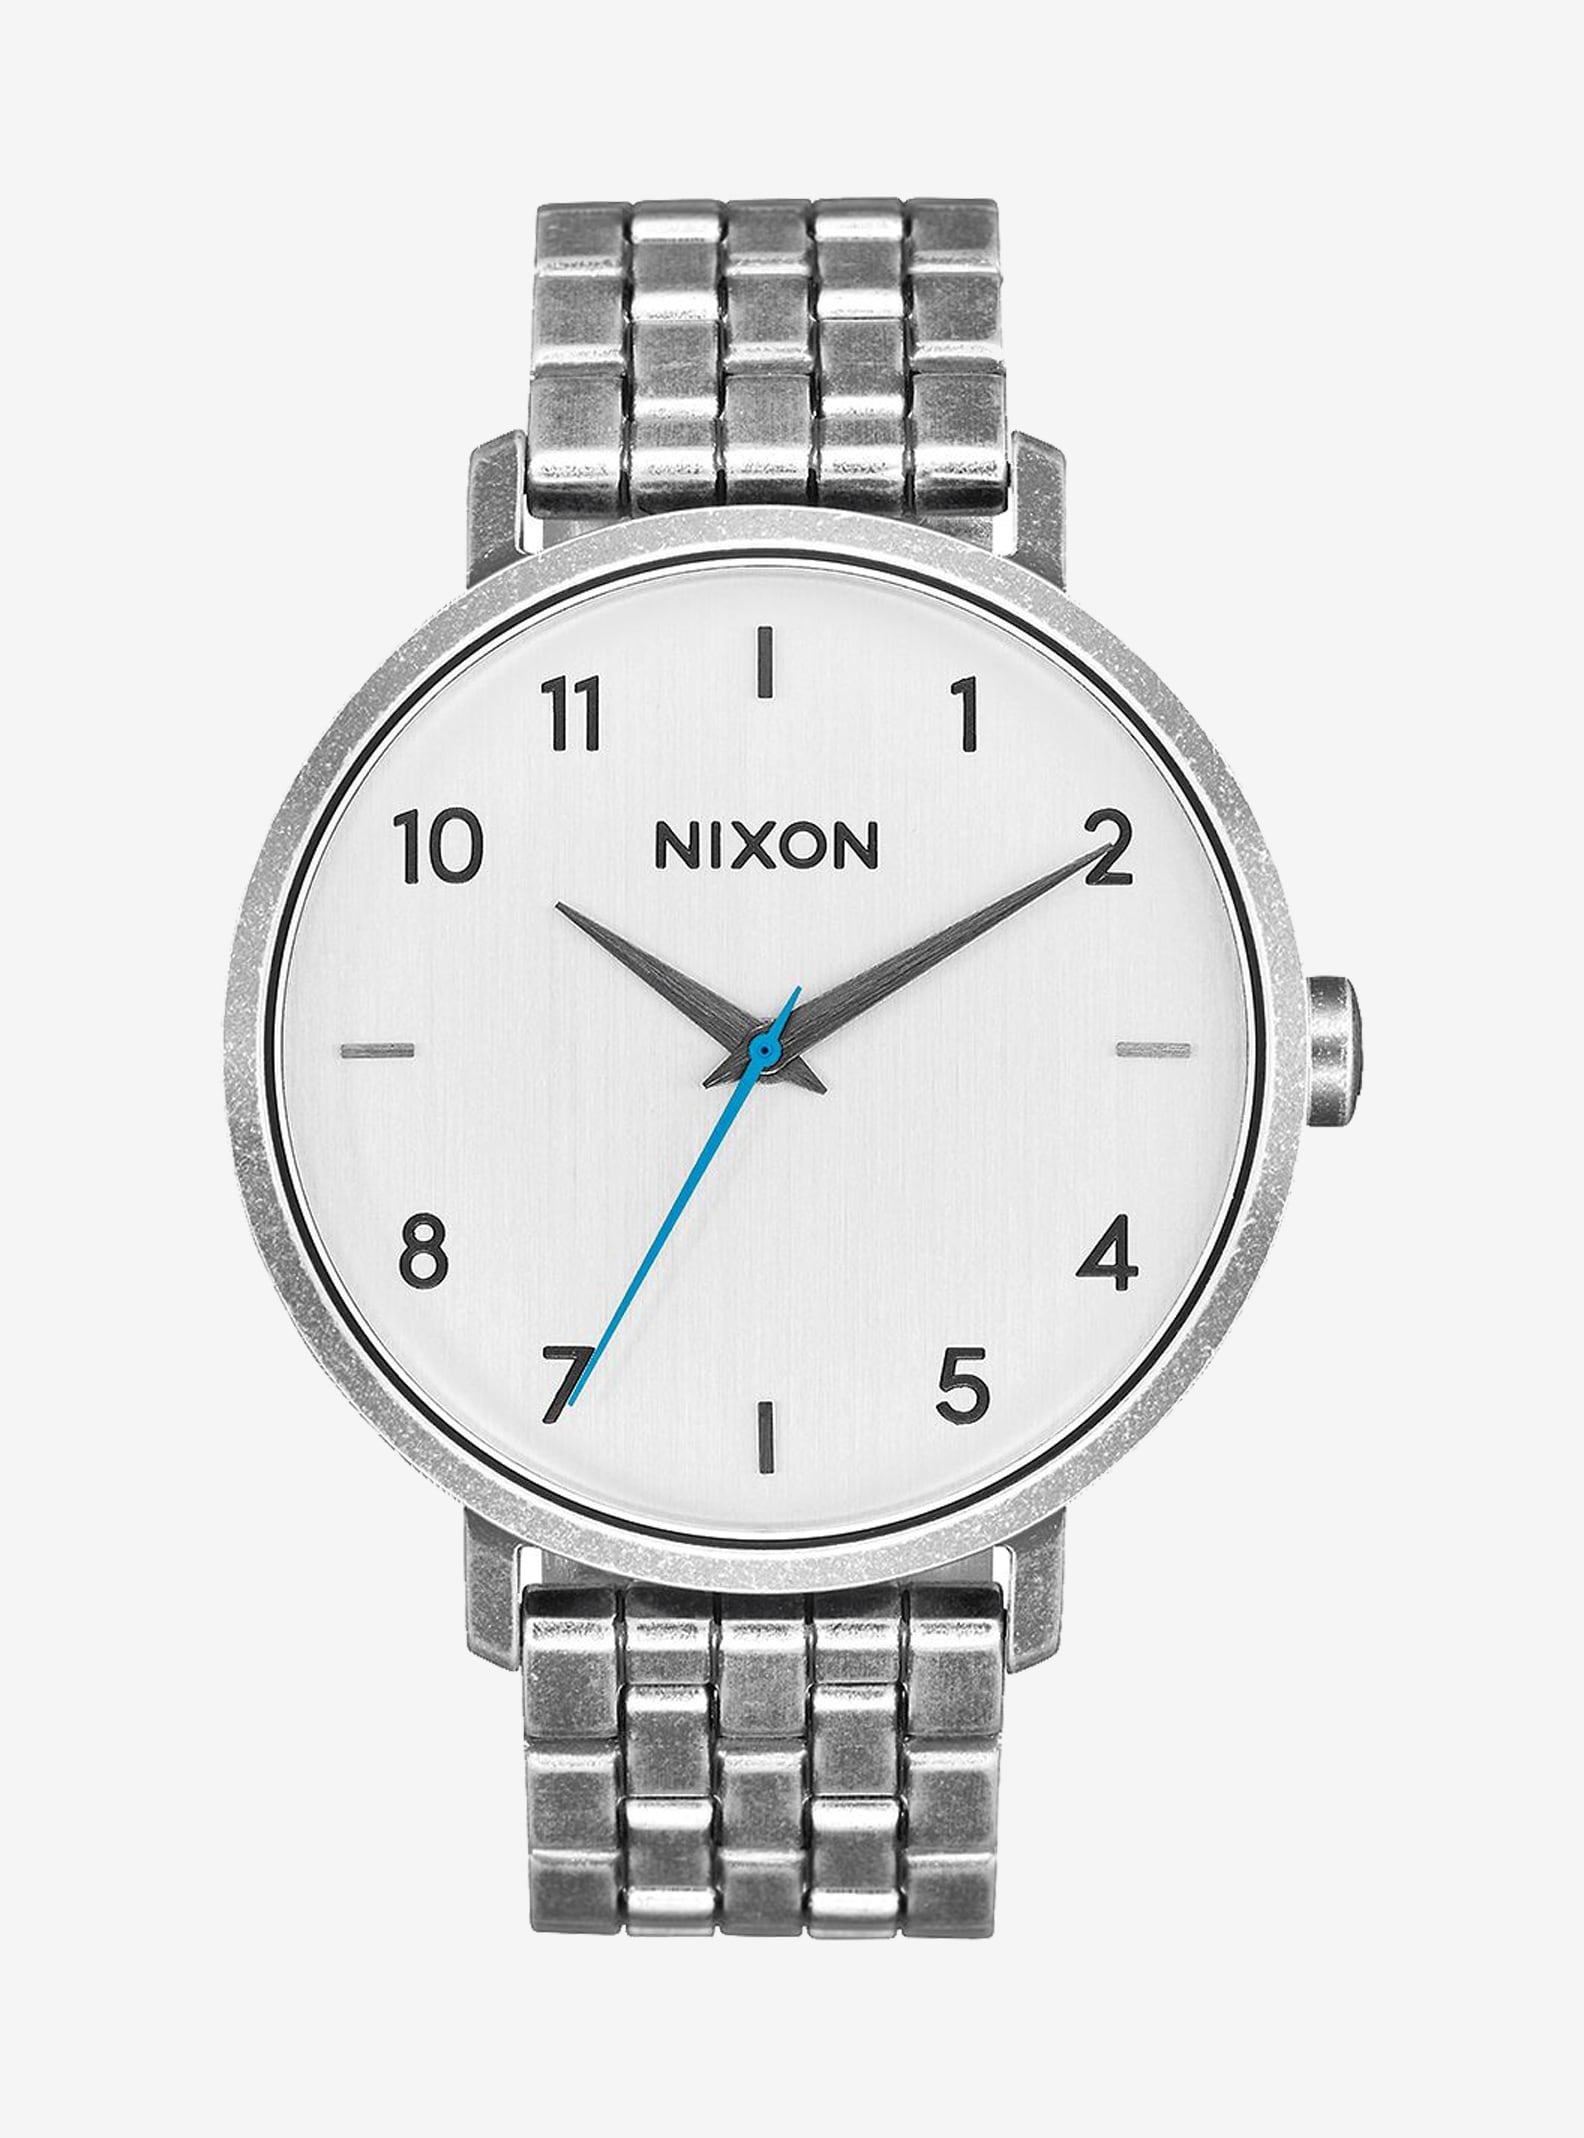 Nixon Arrow Watch shown in Silver / Antique